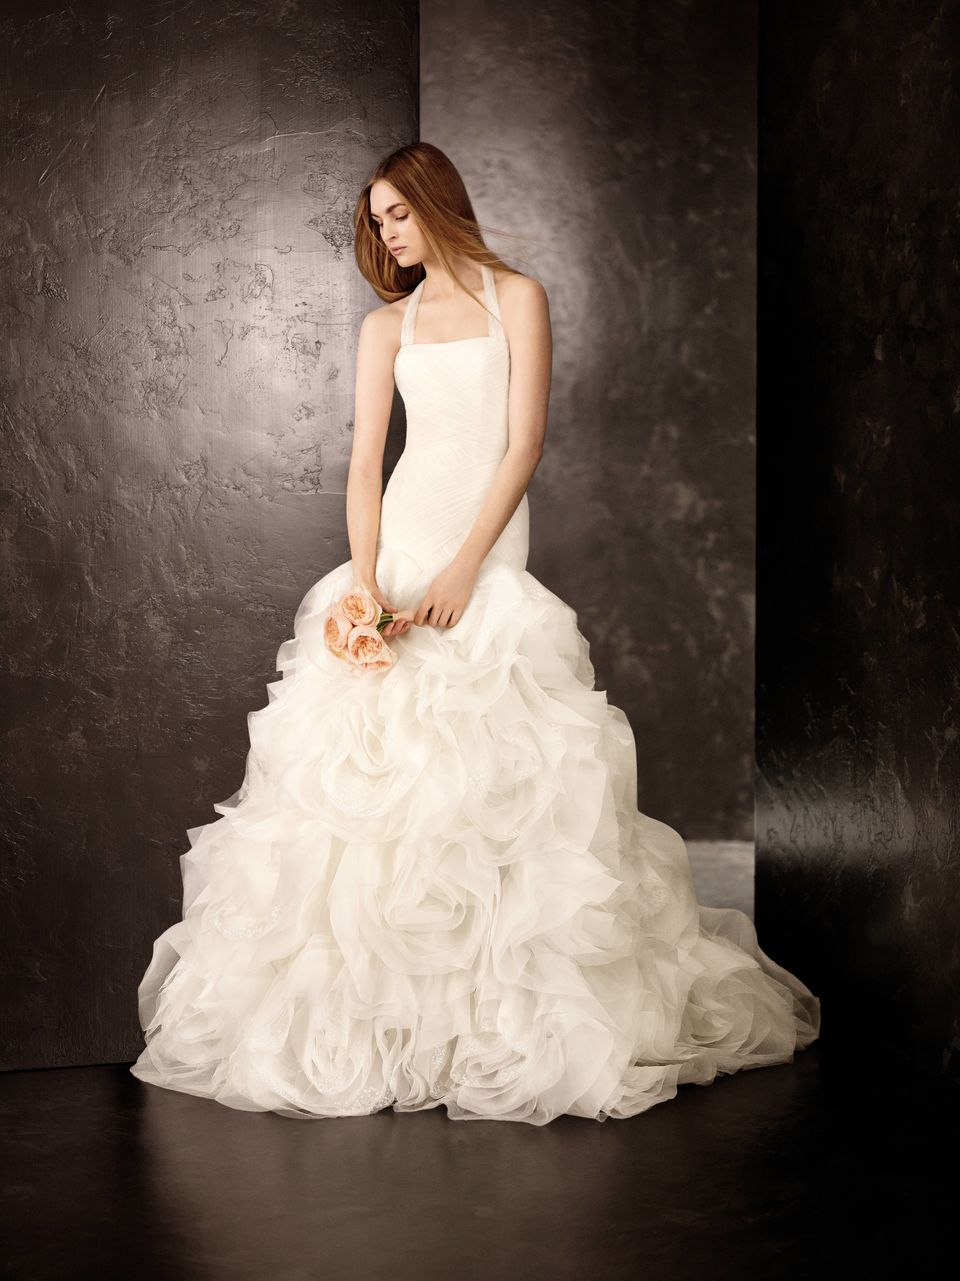 White By Vera Wang Fall 18 Collection Released At David's Bridal ...